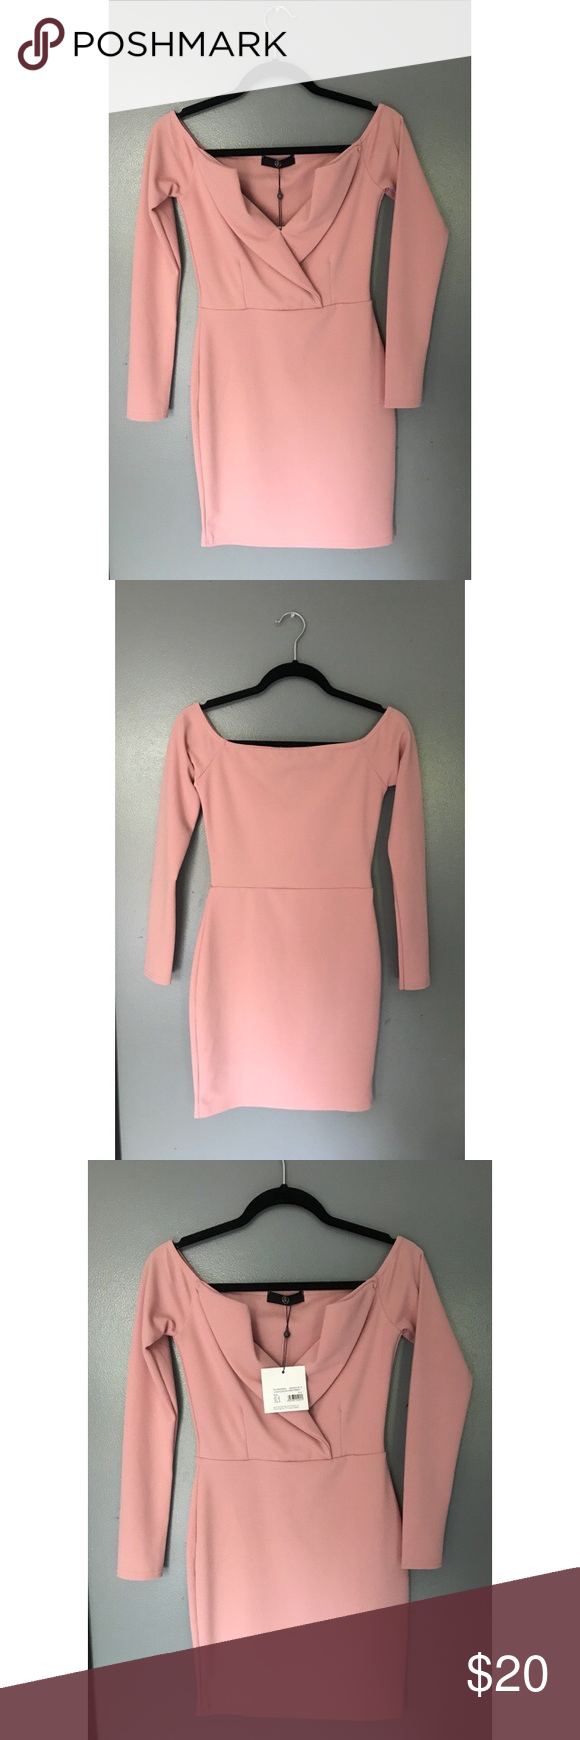 4fd32e865f09 NWT Missguided Pink Bardot Foldover Wrap Dress Never been worn! Light pink,  long sleeve body con dress. Falls on the mid thigh and has two lose flaps  on the ...